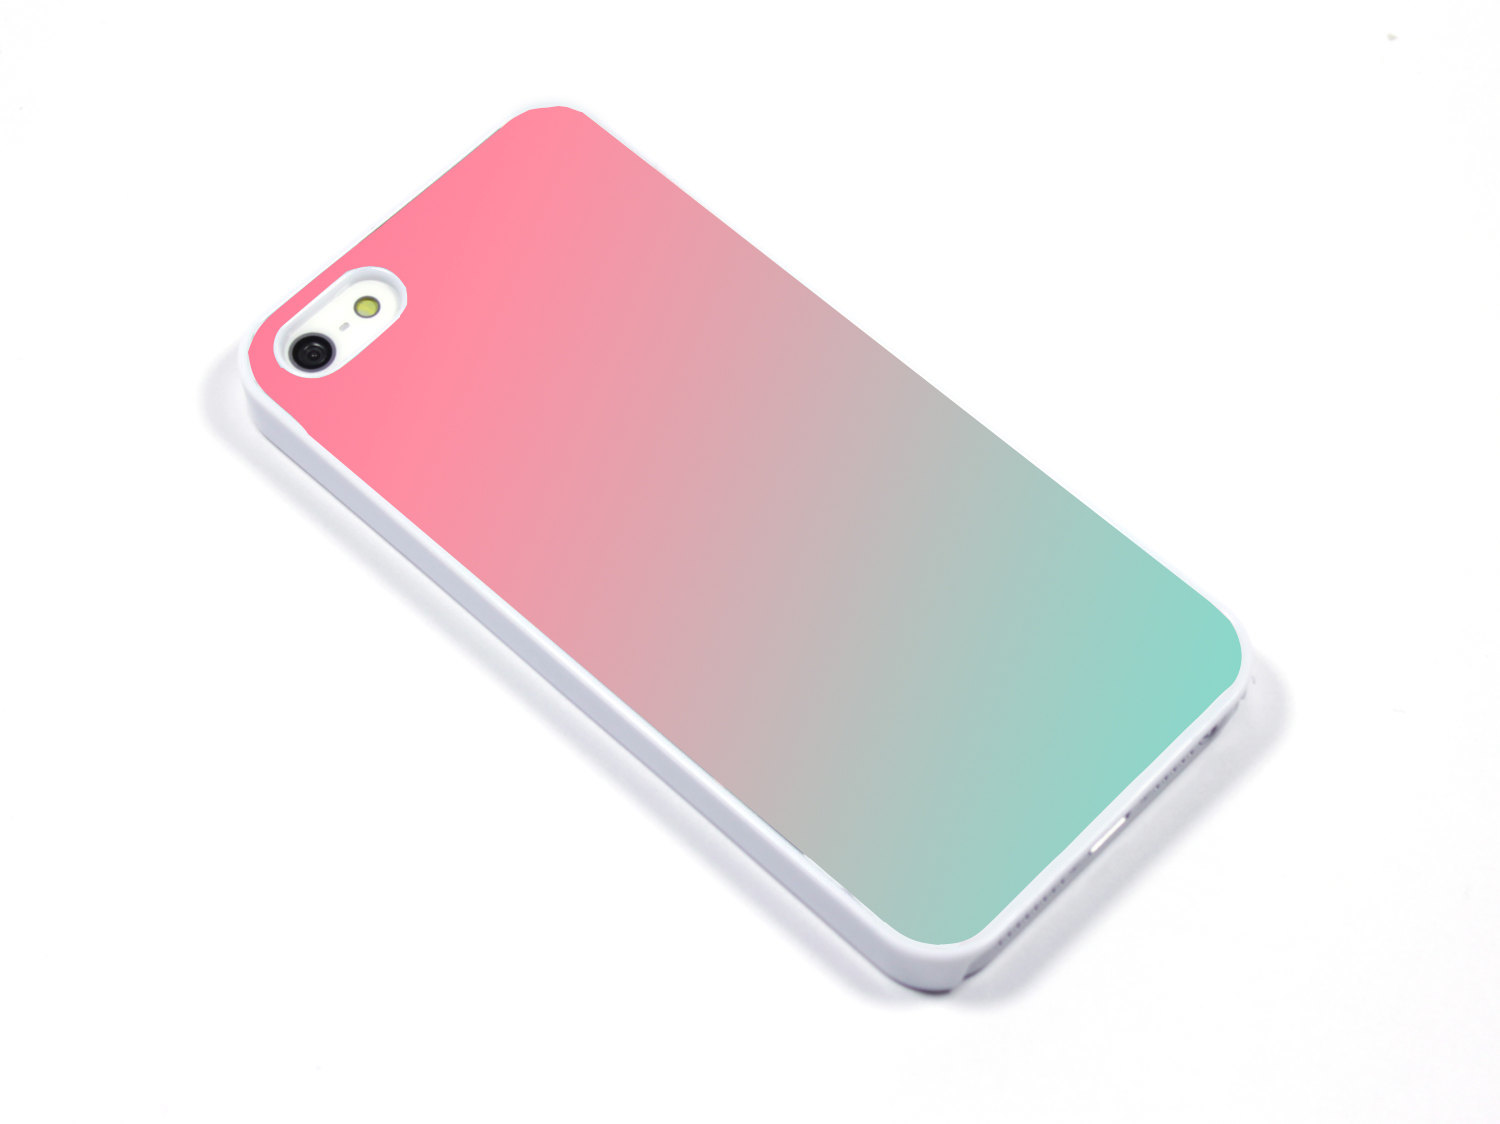 iPhone Case iPhone 5 iPhone 5s iPhone 5C iphone 4 Samsung Galaxy S3 S4 - Ombre pink pool mint - p17